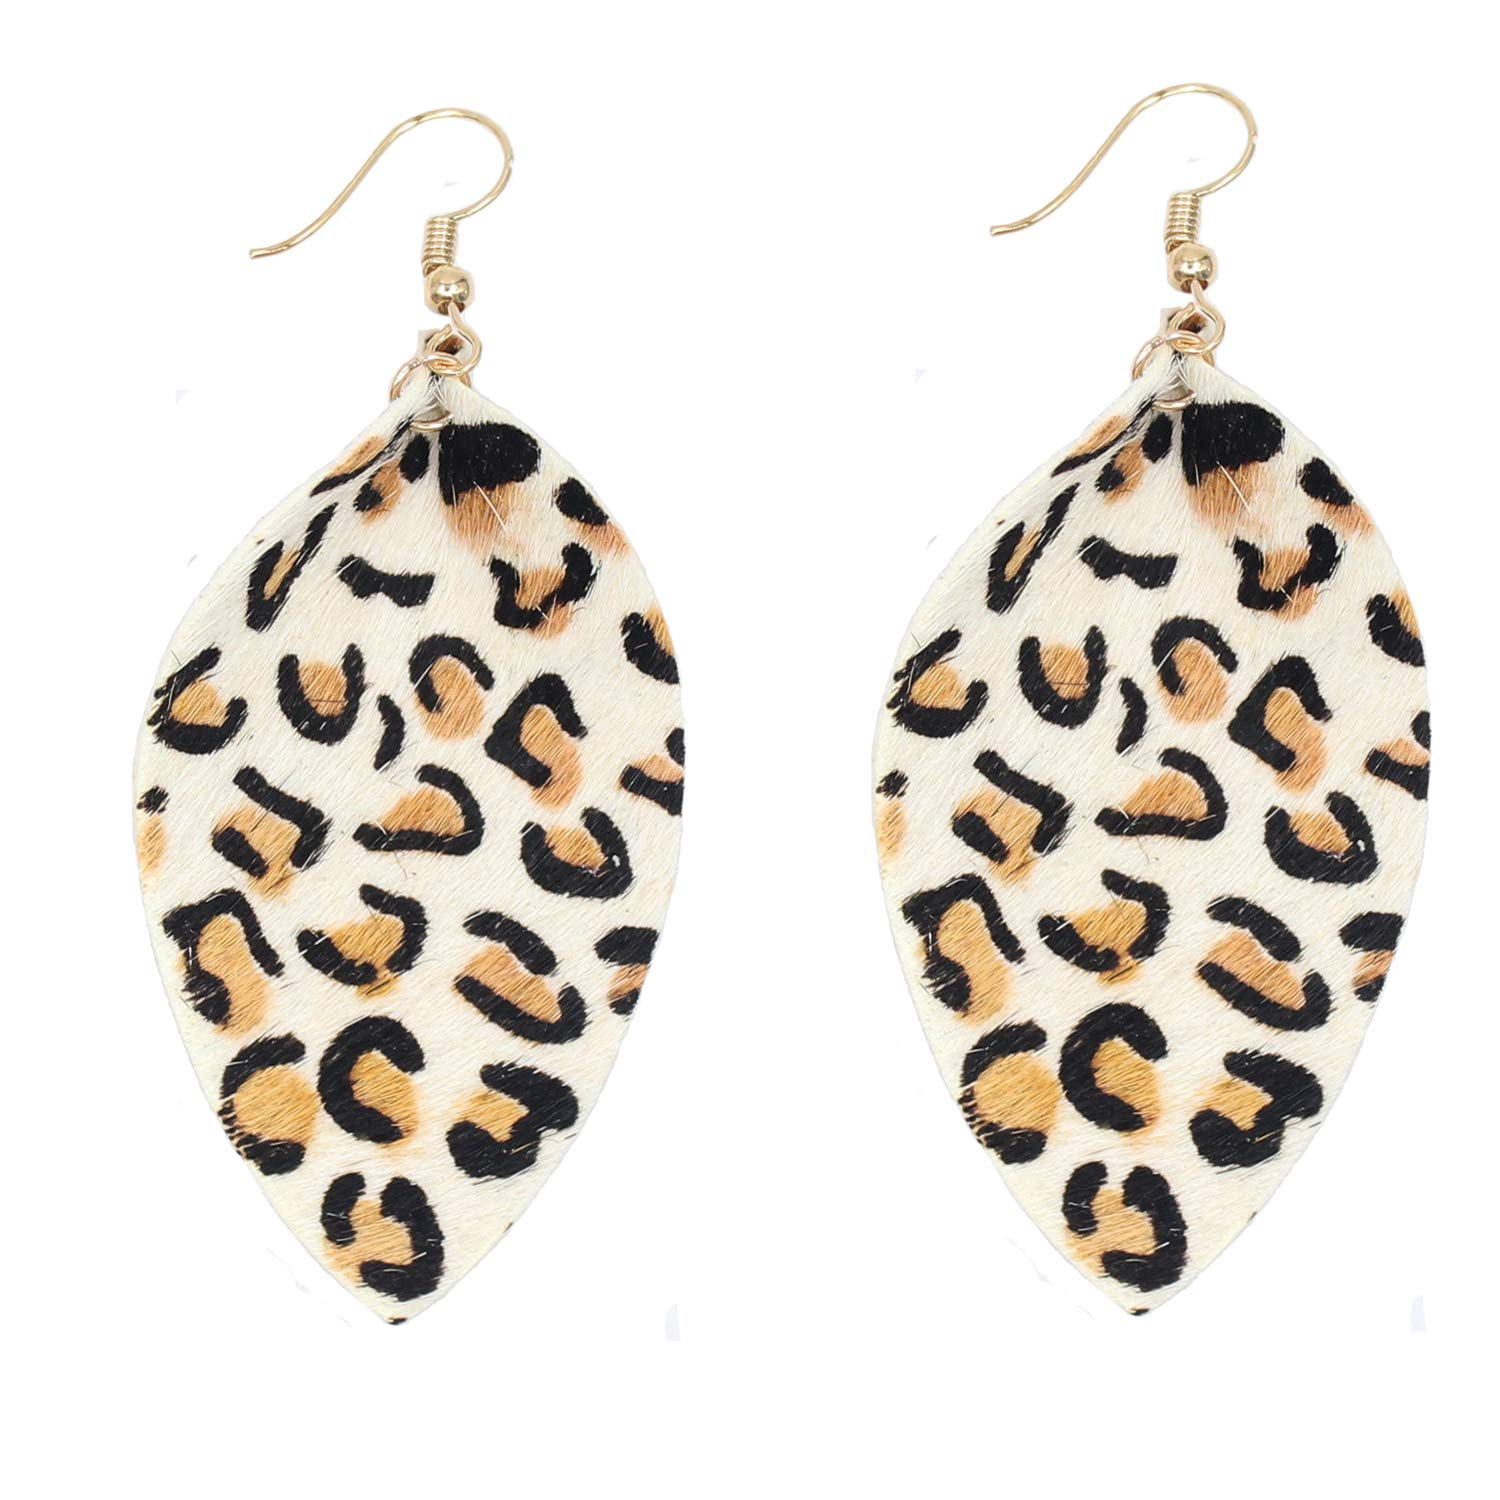 KSQS Leather Fur Teardrop Earrings Leaf Drop Soft and Lightweight Dangle for Women&Girl Ltd